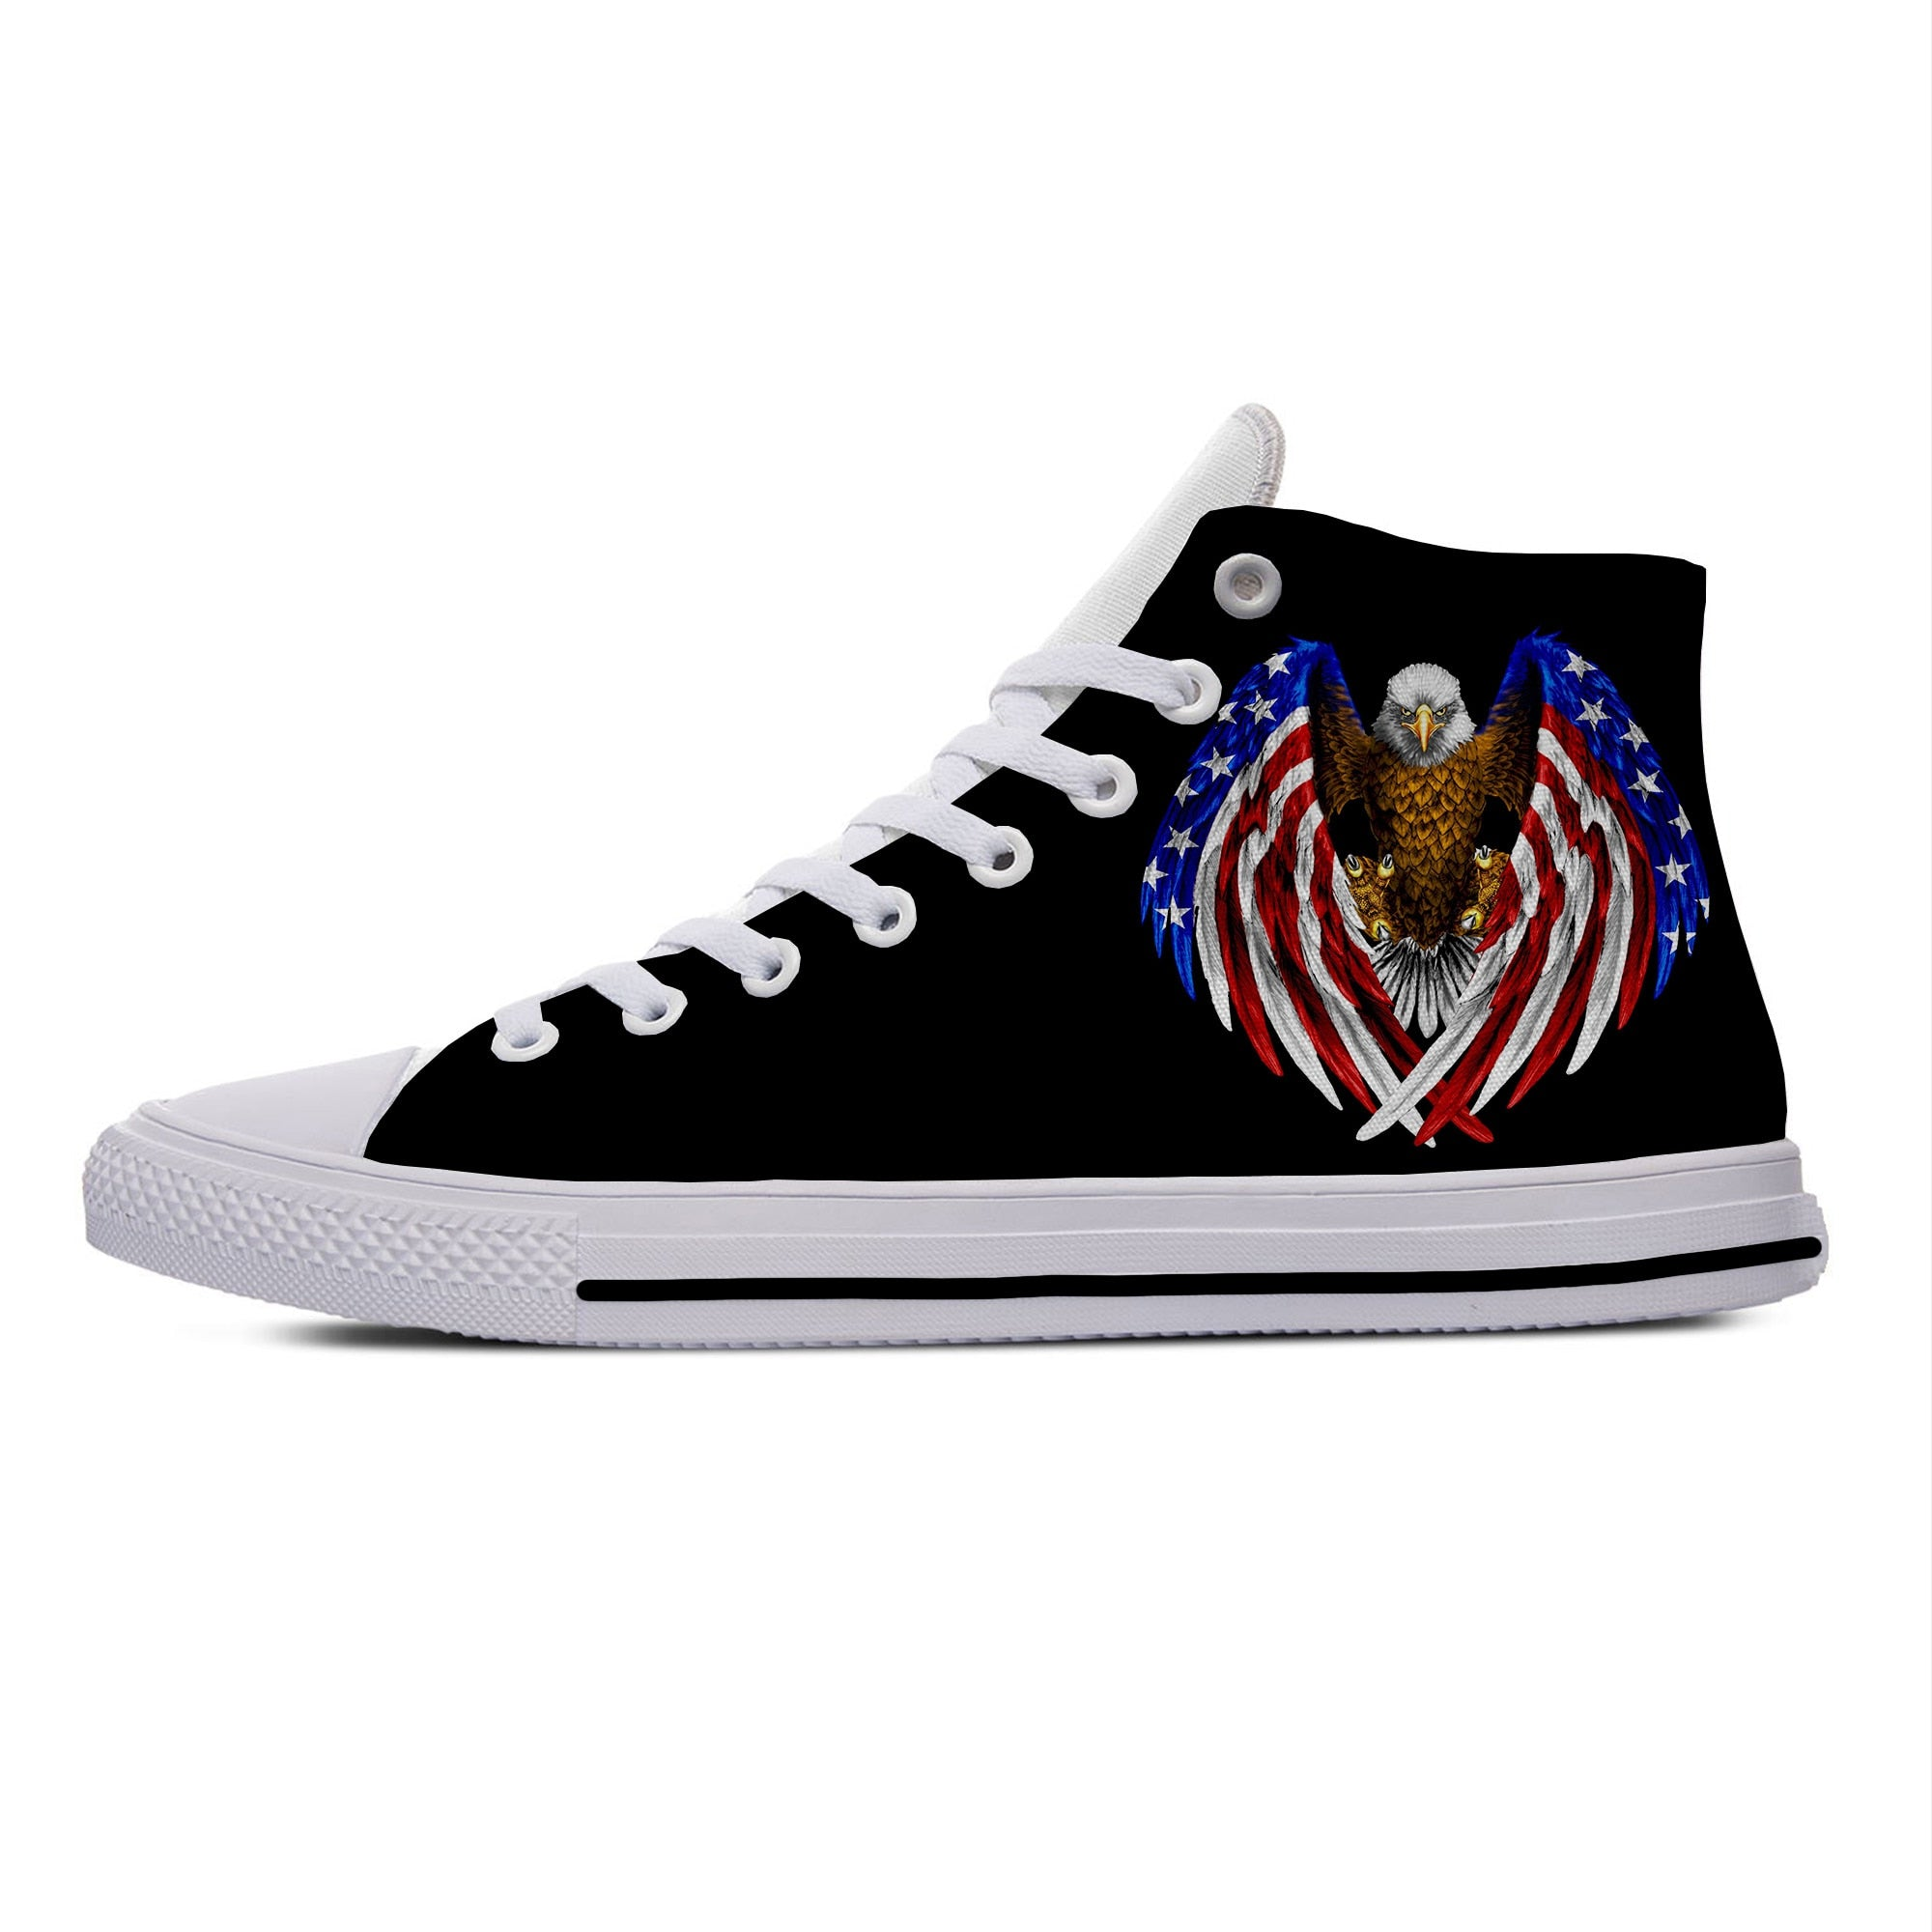 American Heritage High Tops